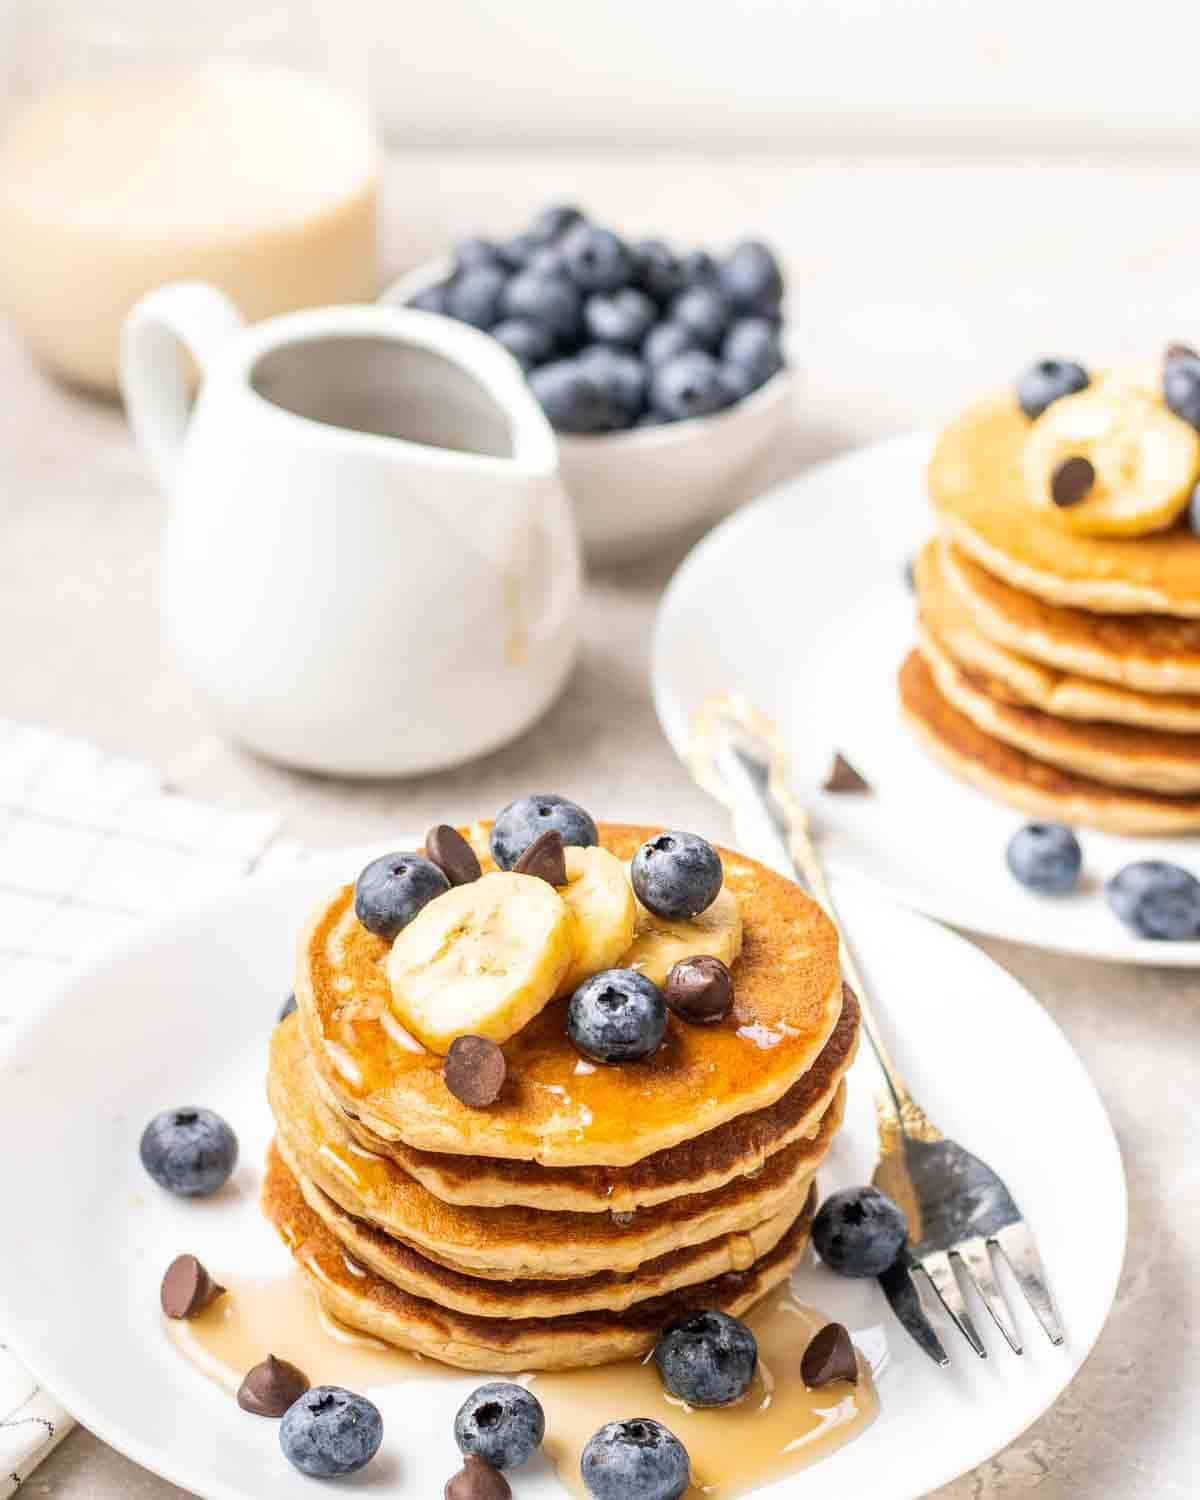 2 stacks of pea protein pancakes topped with fruits with bowl of blueberries and glass of milk in the background.